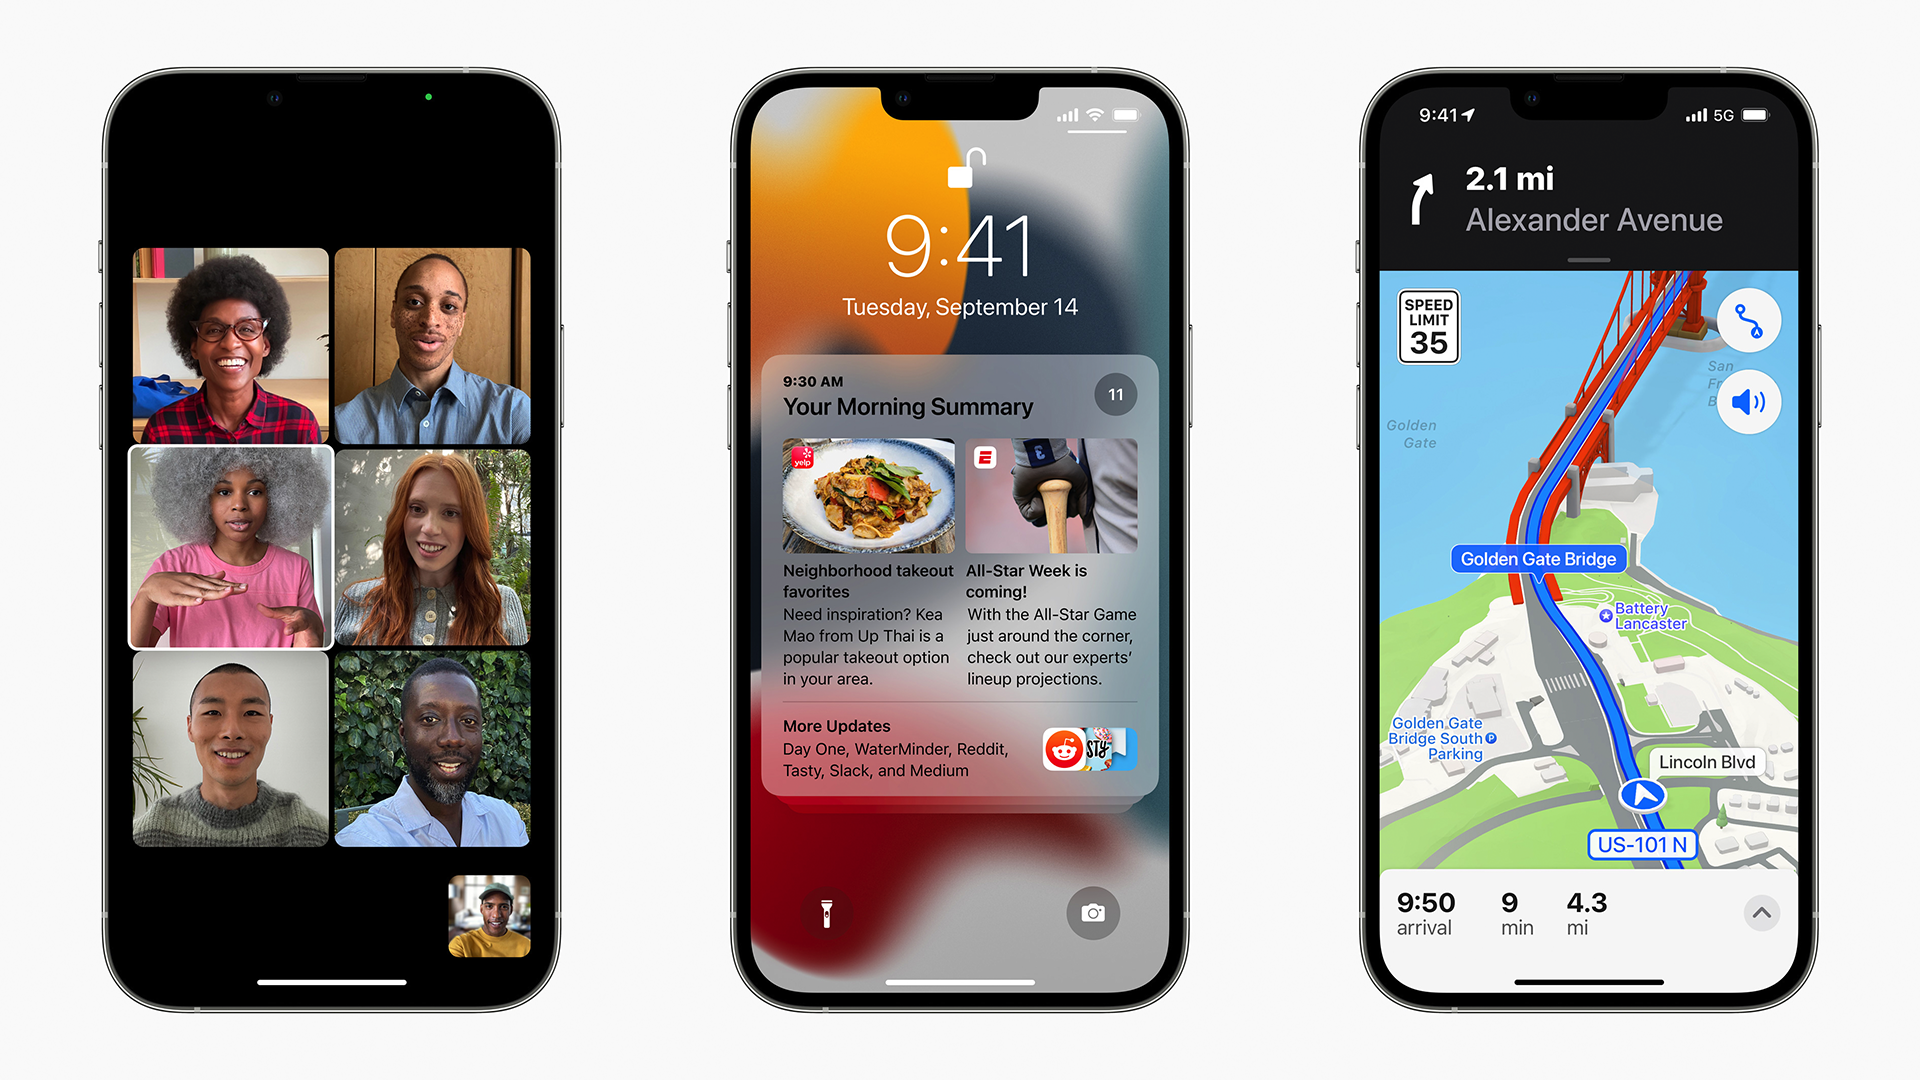 The iPhone 13 running Maps, recieving notifications, and running a FaceTime group call.